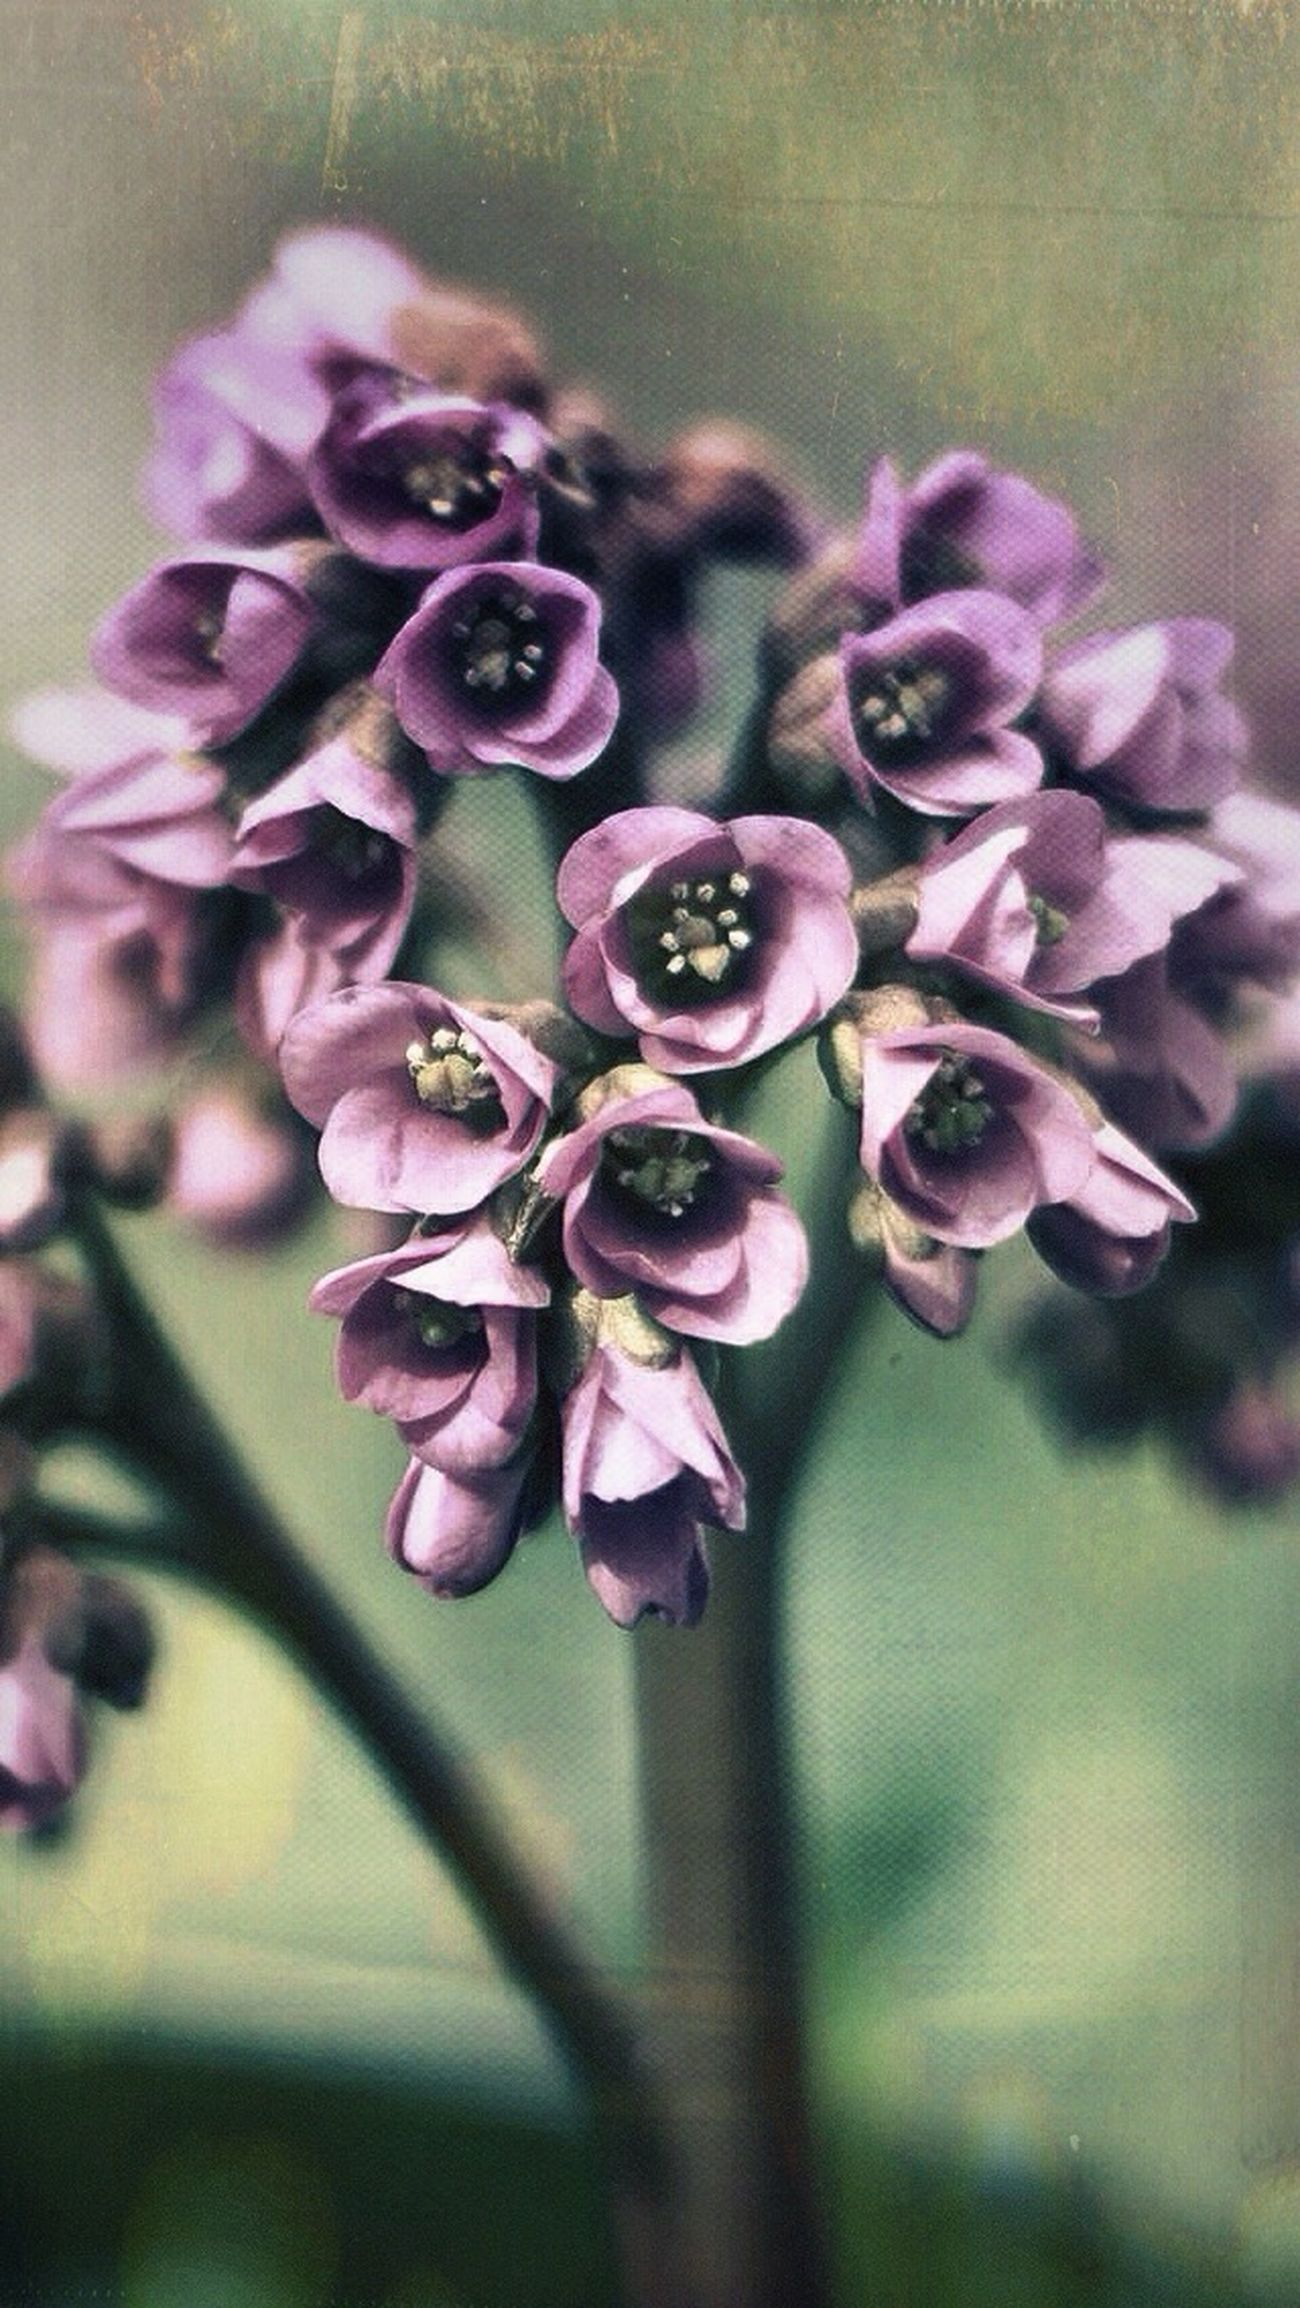 Vintage flowers with coolg greyish look Flowers Afterlightapp